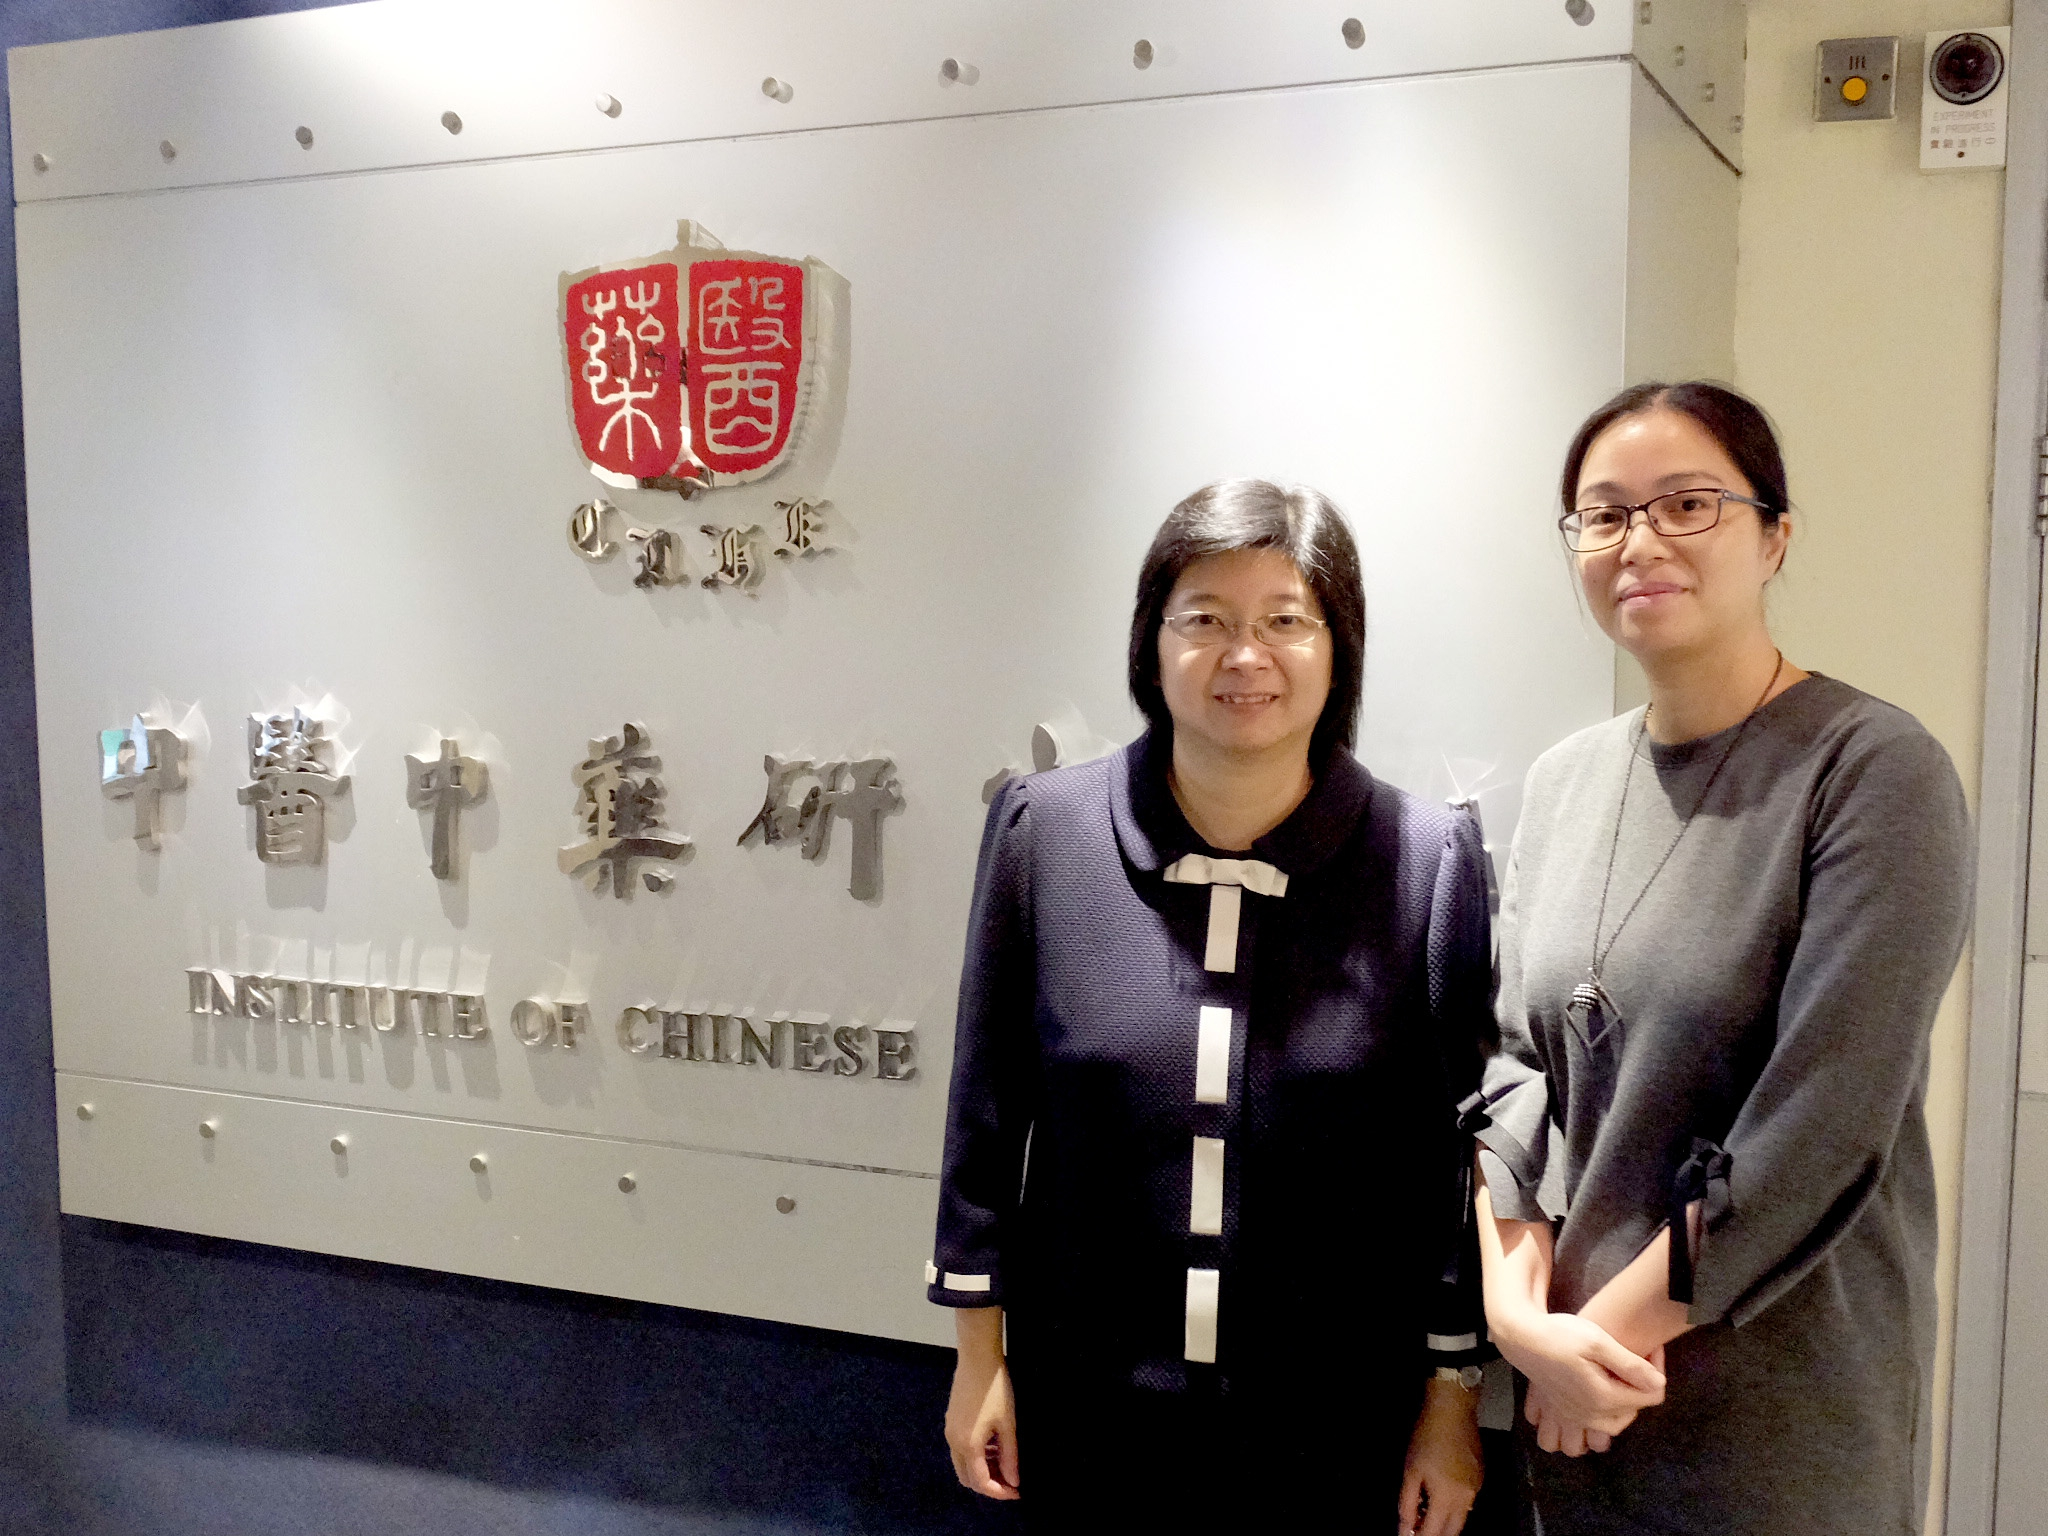 Prof. Clara Bik-San Lau, Associate Director of ICM and Associate Director of the Partner State Key Laboratory of Phytochemistry and Plant Resources in West China (CUHK) (left), and Ms. Virginia Kit-Man Lau, Research Coordinator of ICM, CUHK.